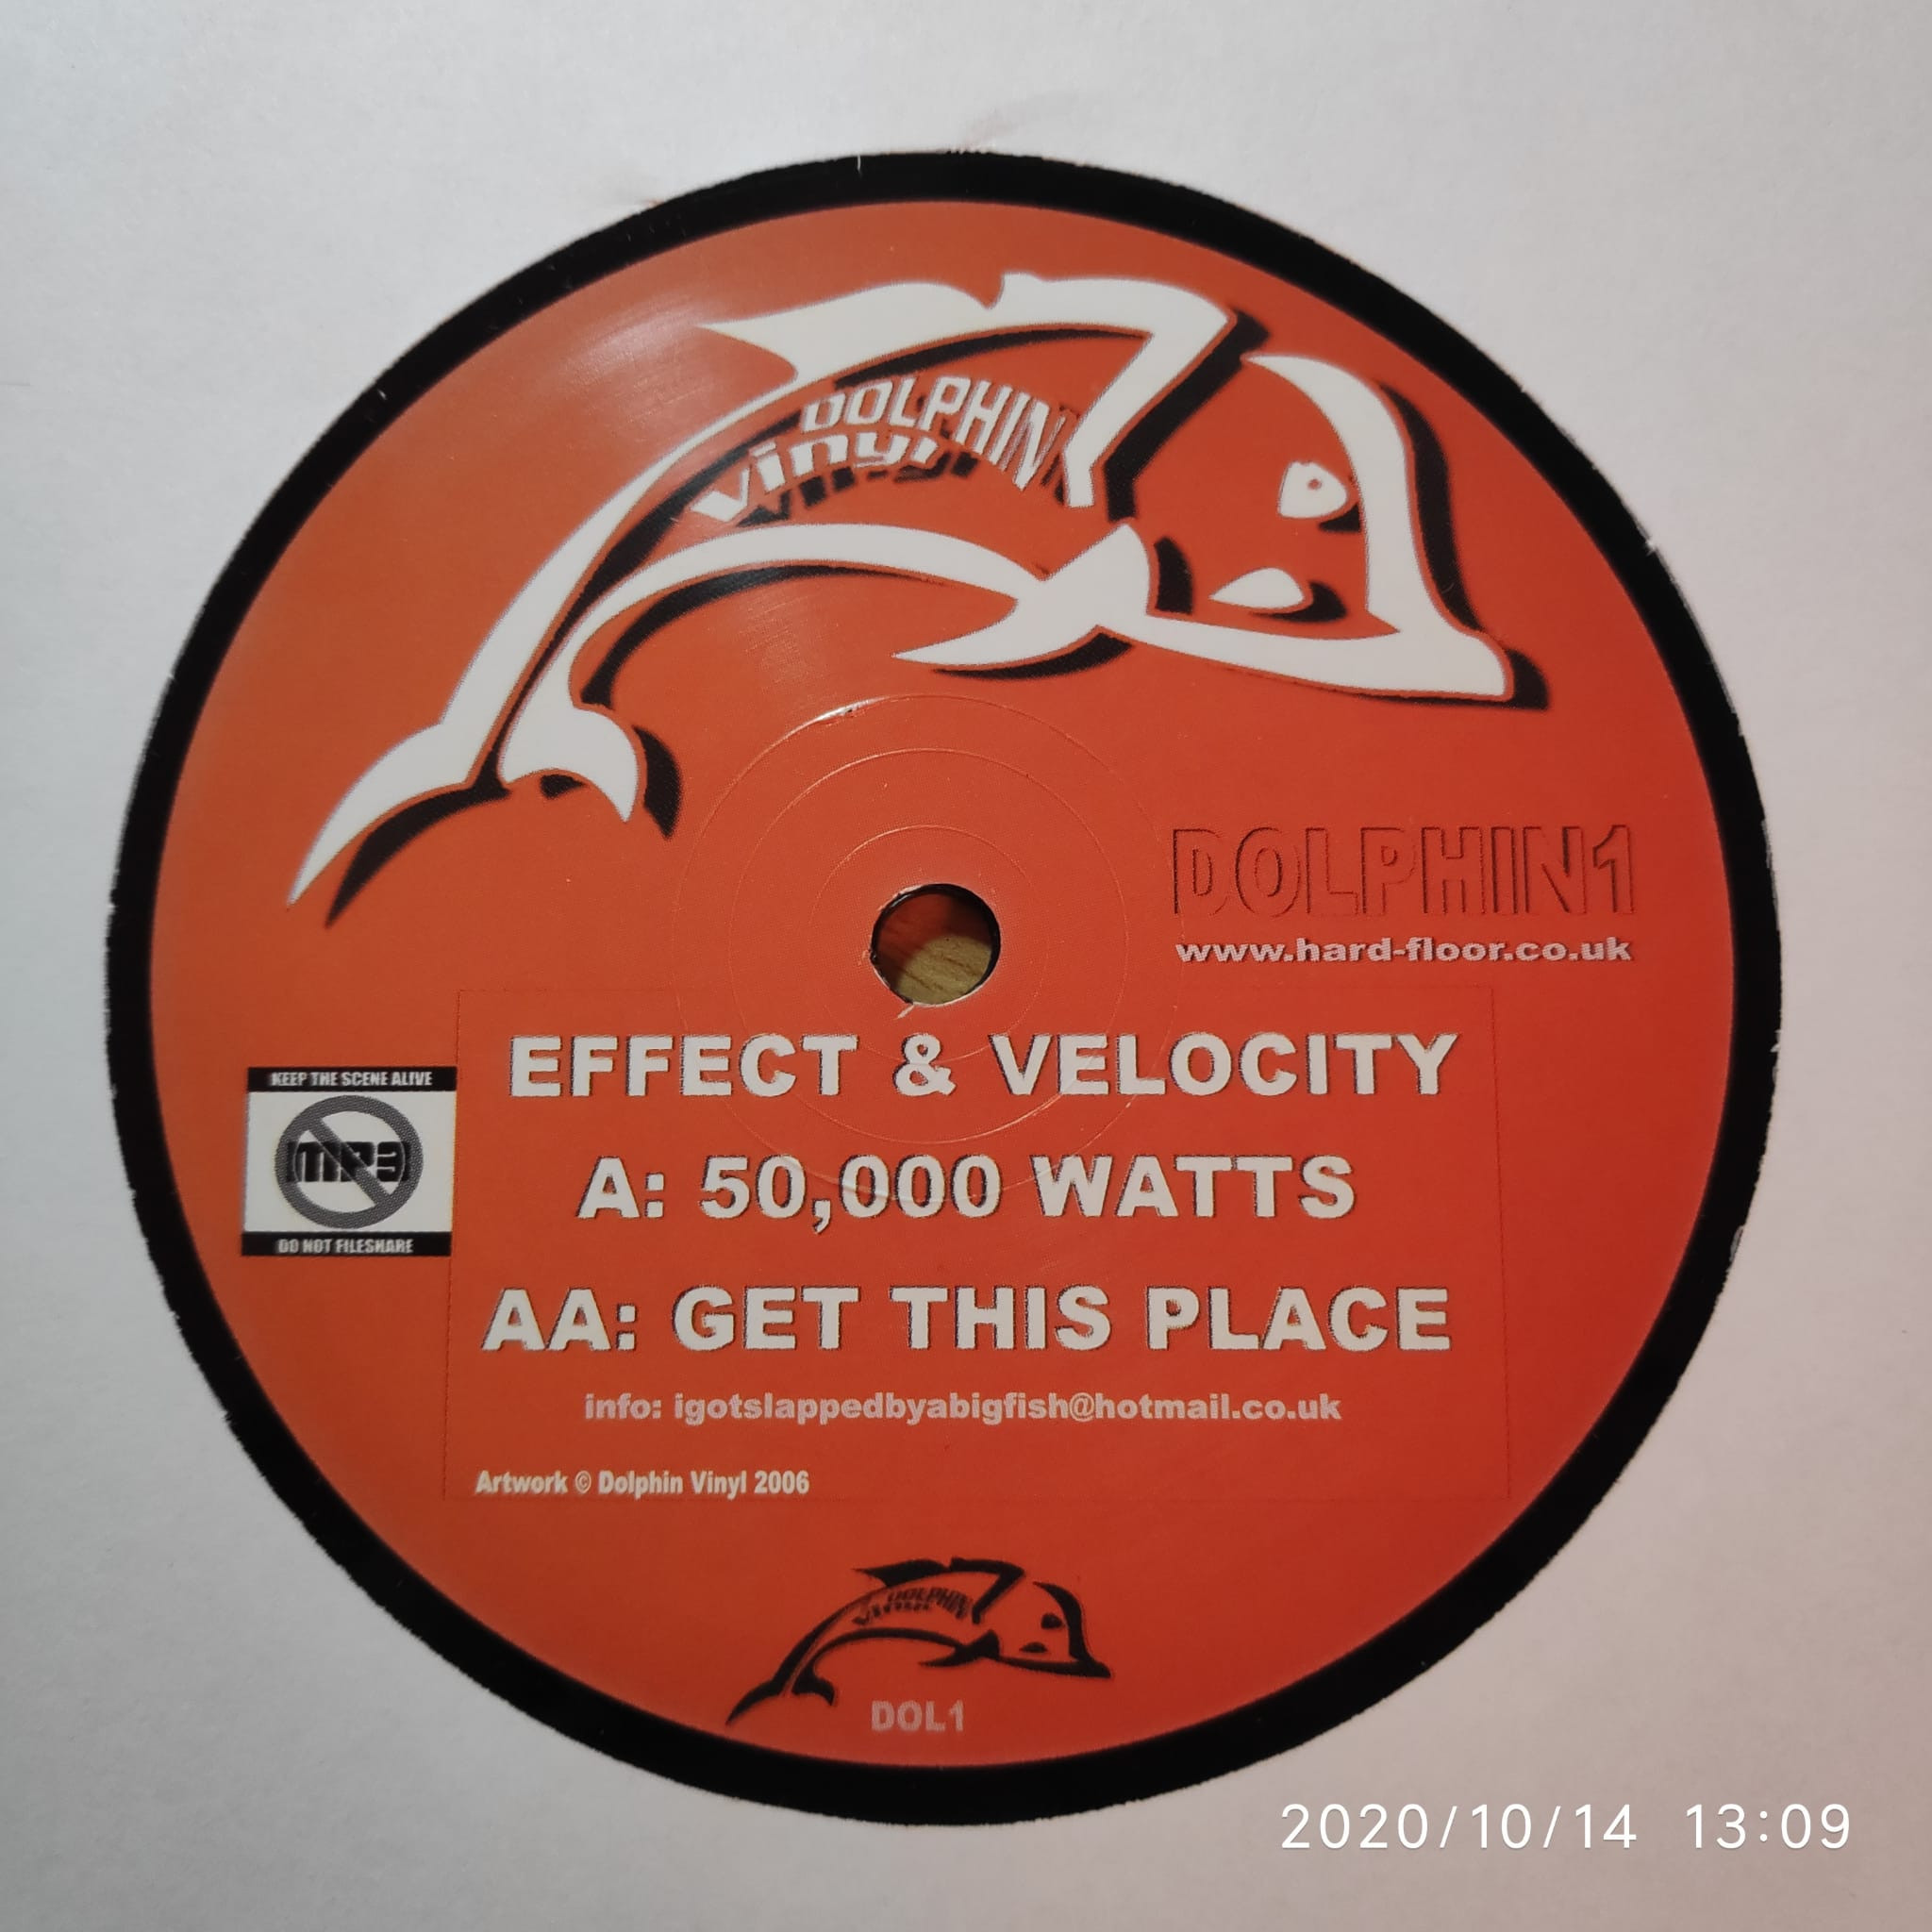 (11659) Effect & Velocity – 50,000 Watts / Get This Place